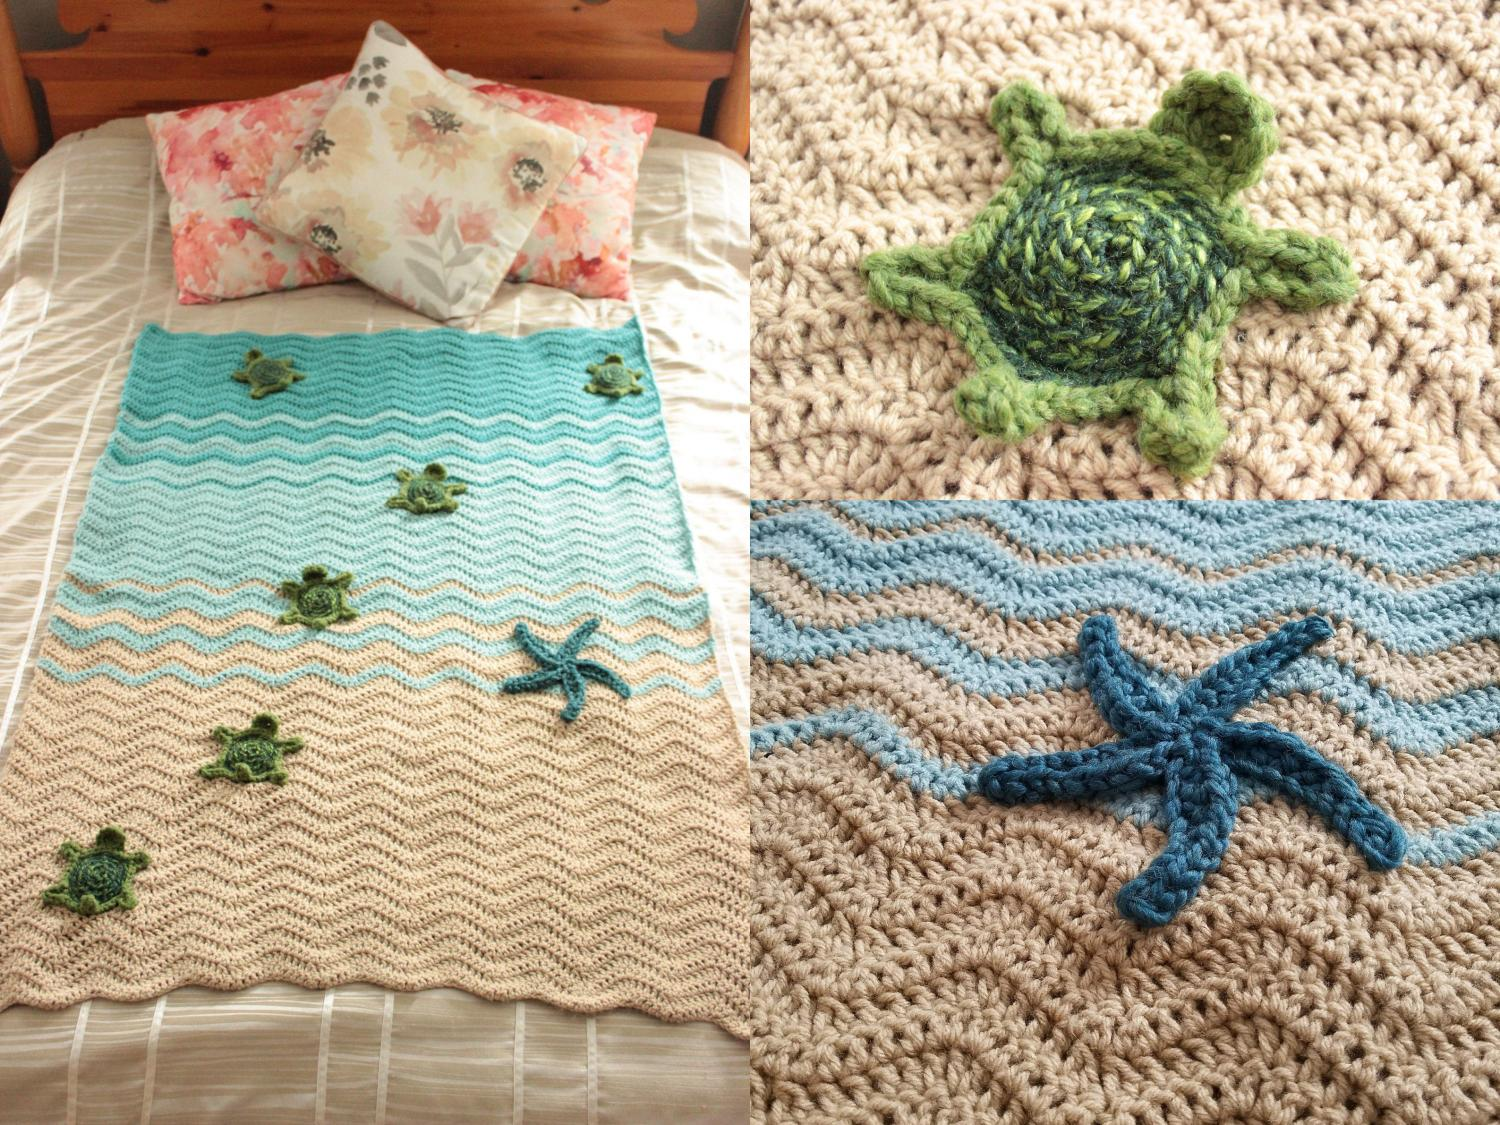 Sea Turtle Beach Blanket - DIY Crochet Sea Turtles Entering The Water On Beach Blanket